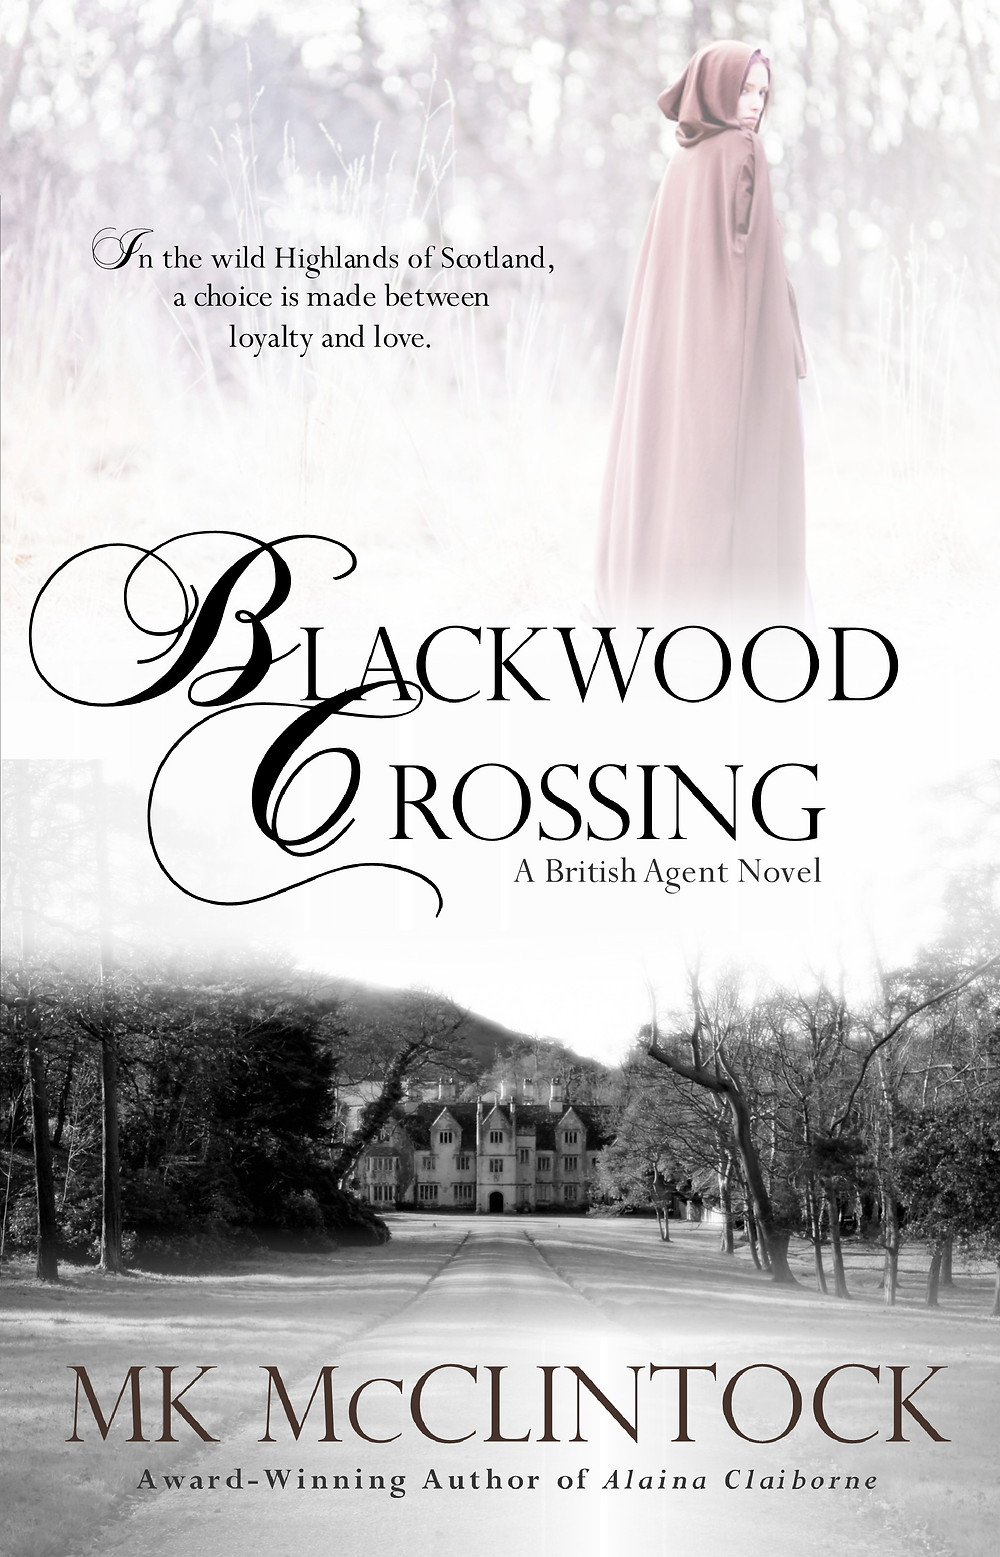 BLACKWOOD CROSSING by MK McClintock